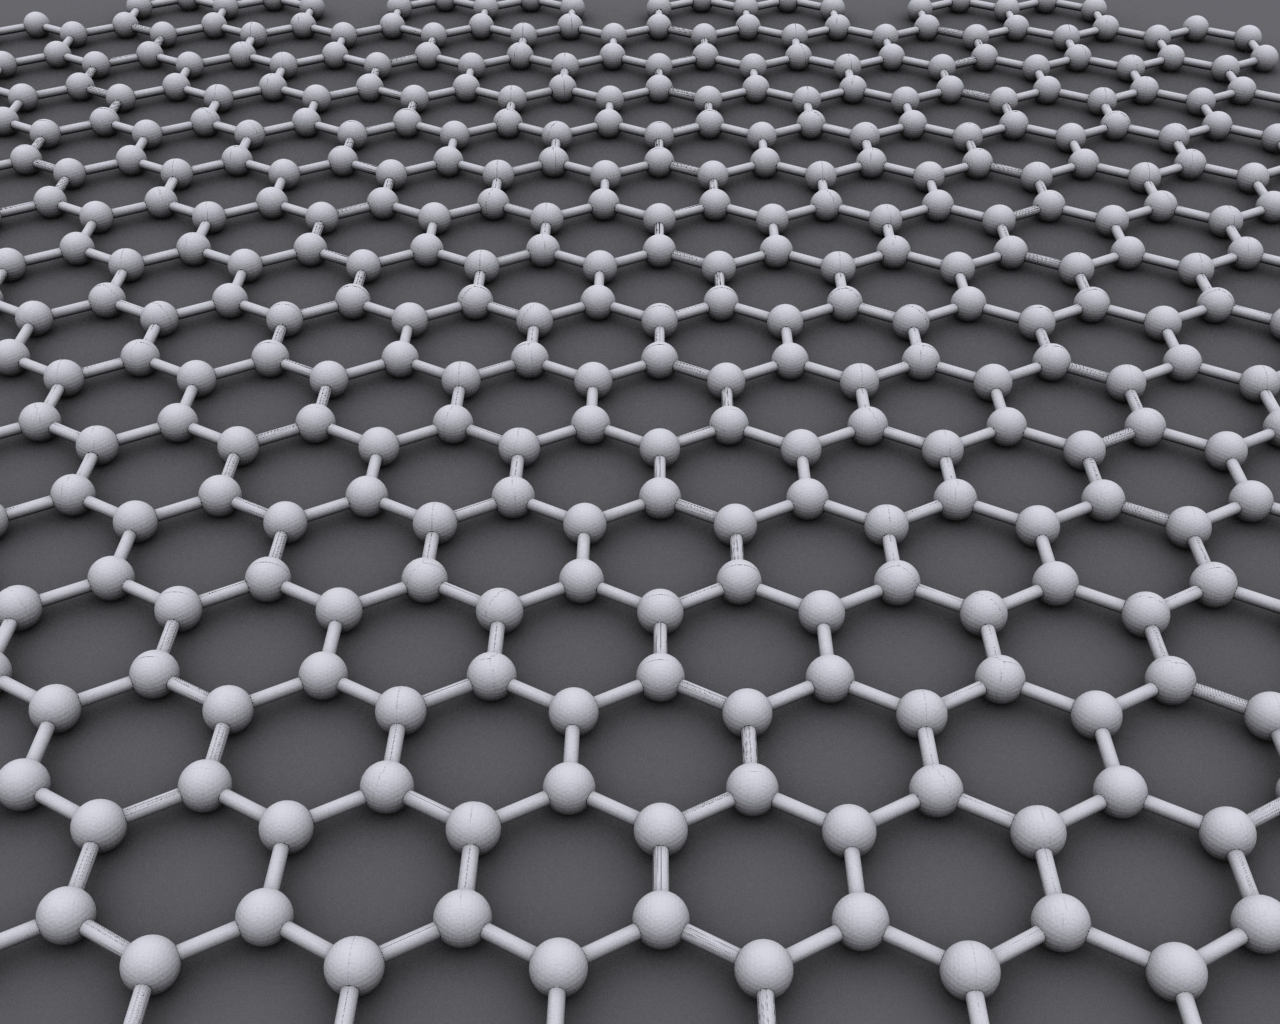 Superconductivity in Graphene Analogous Materials